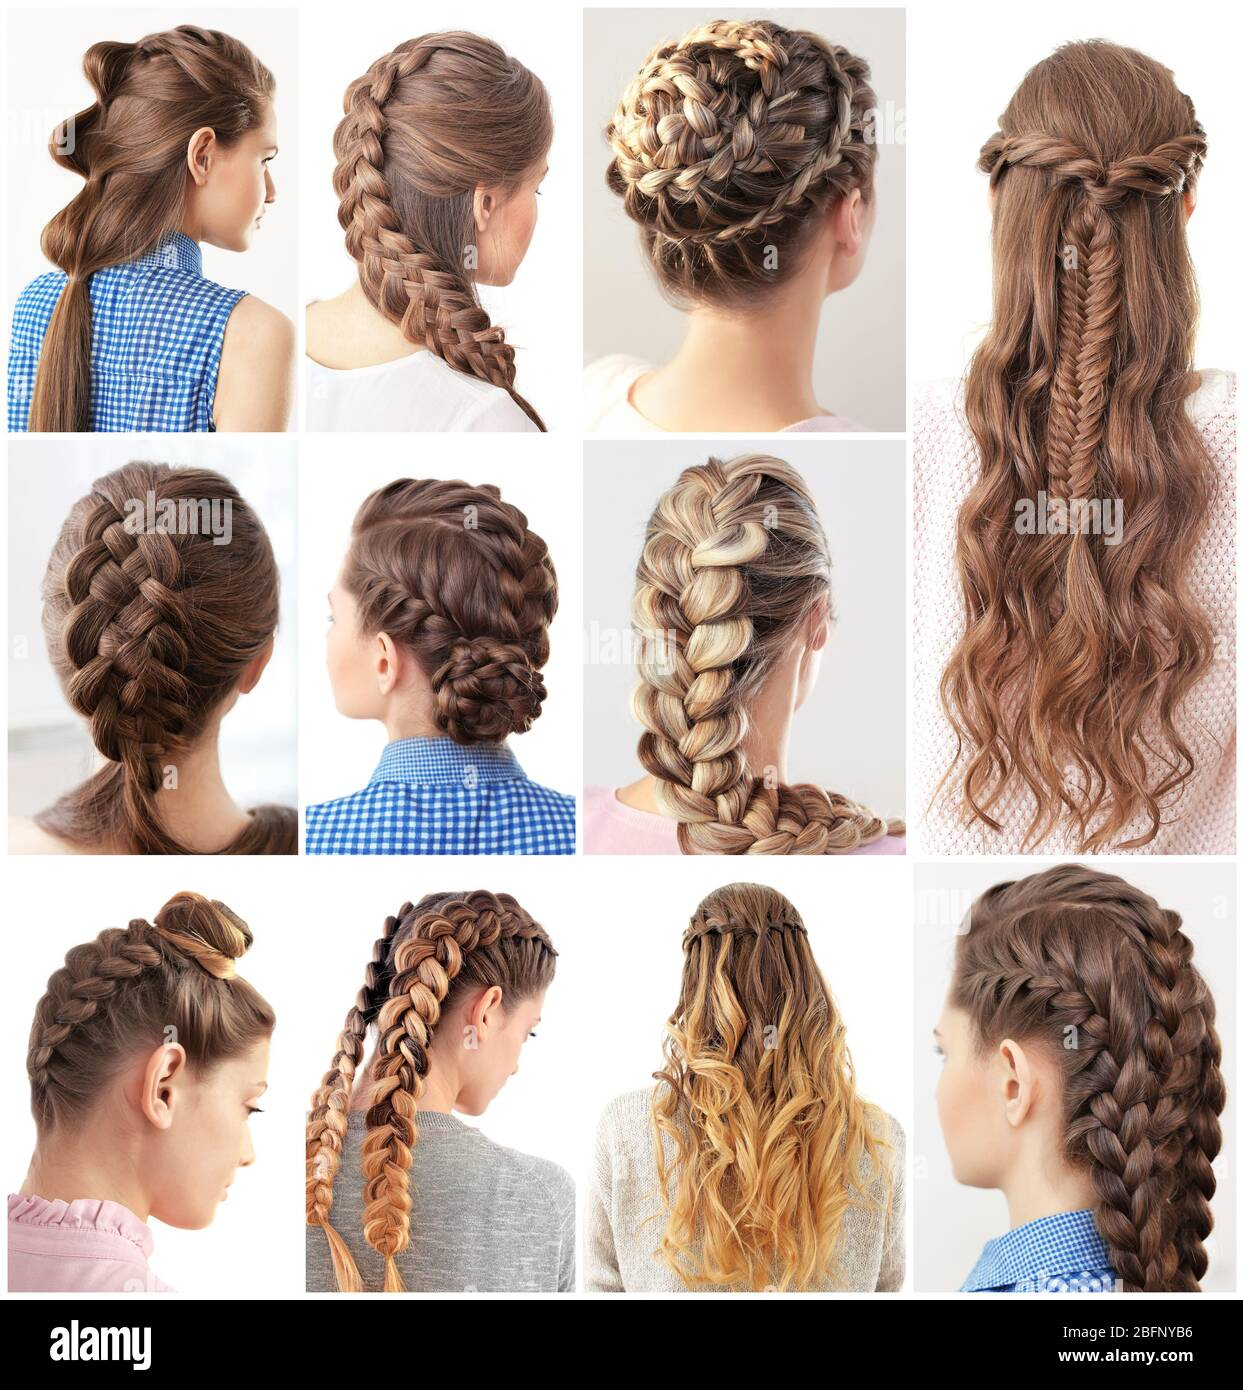 Women with different hairstyles Stock Photo - Alamy